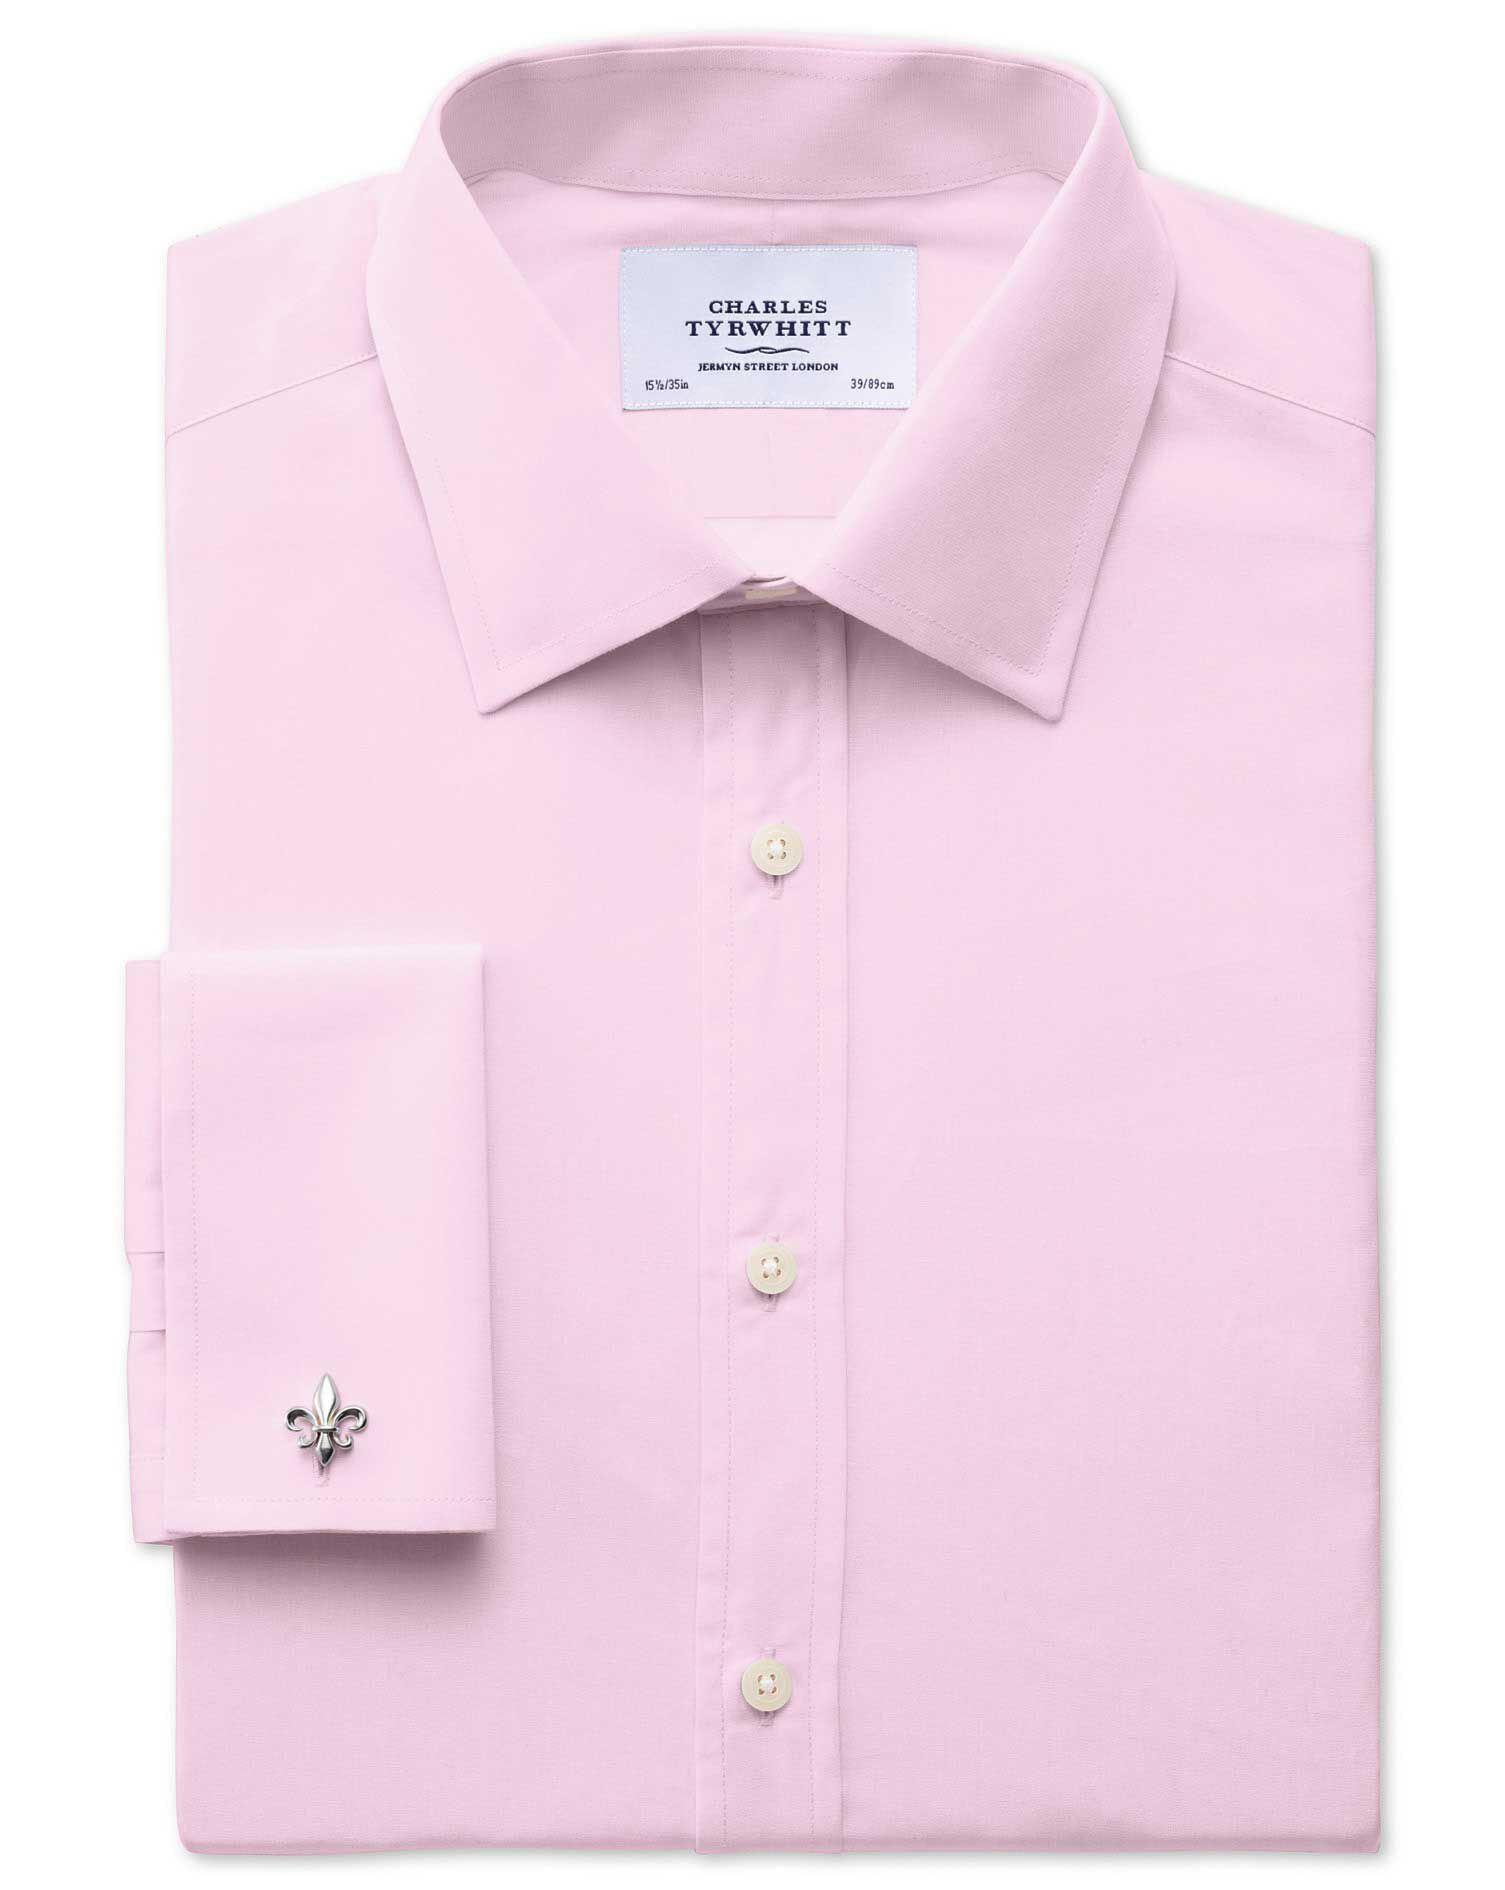 Classic Fit End-On-End Pink Cotton Formal Shirt Double Cuff Size 17/38 by Charles Tyrwhitt